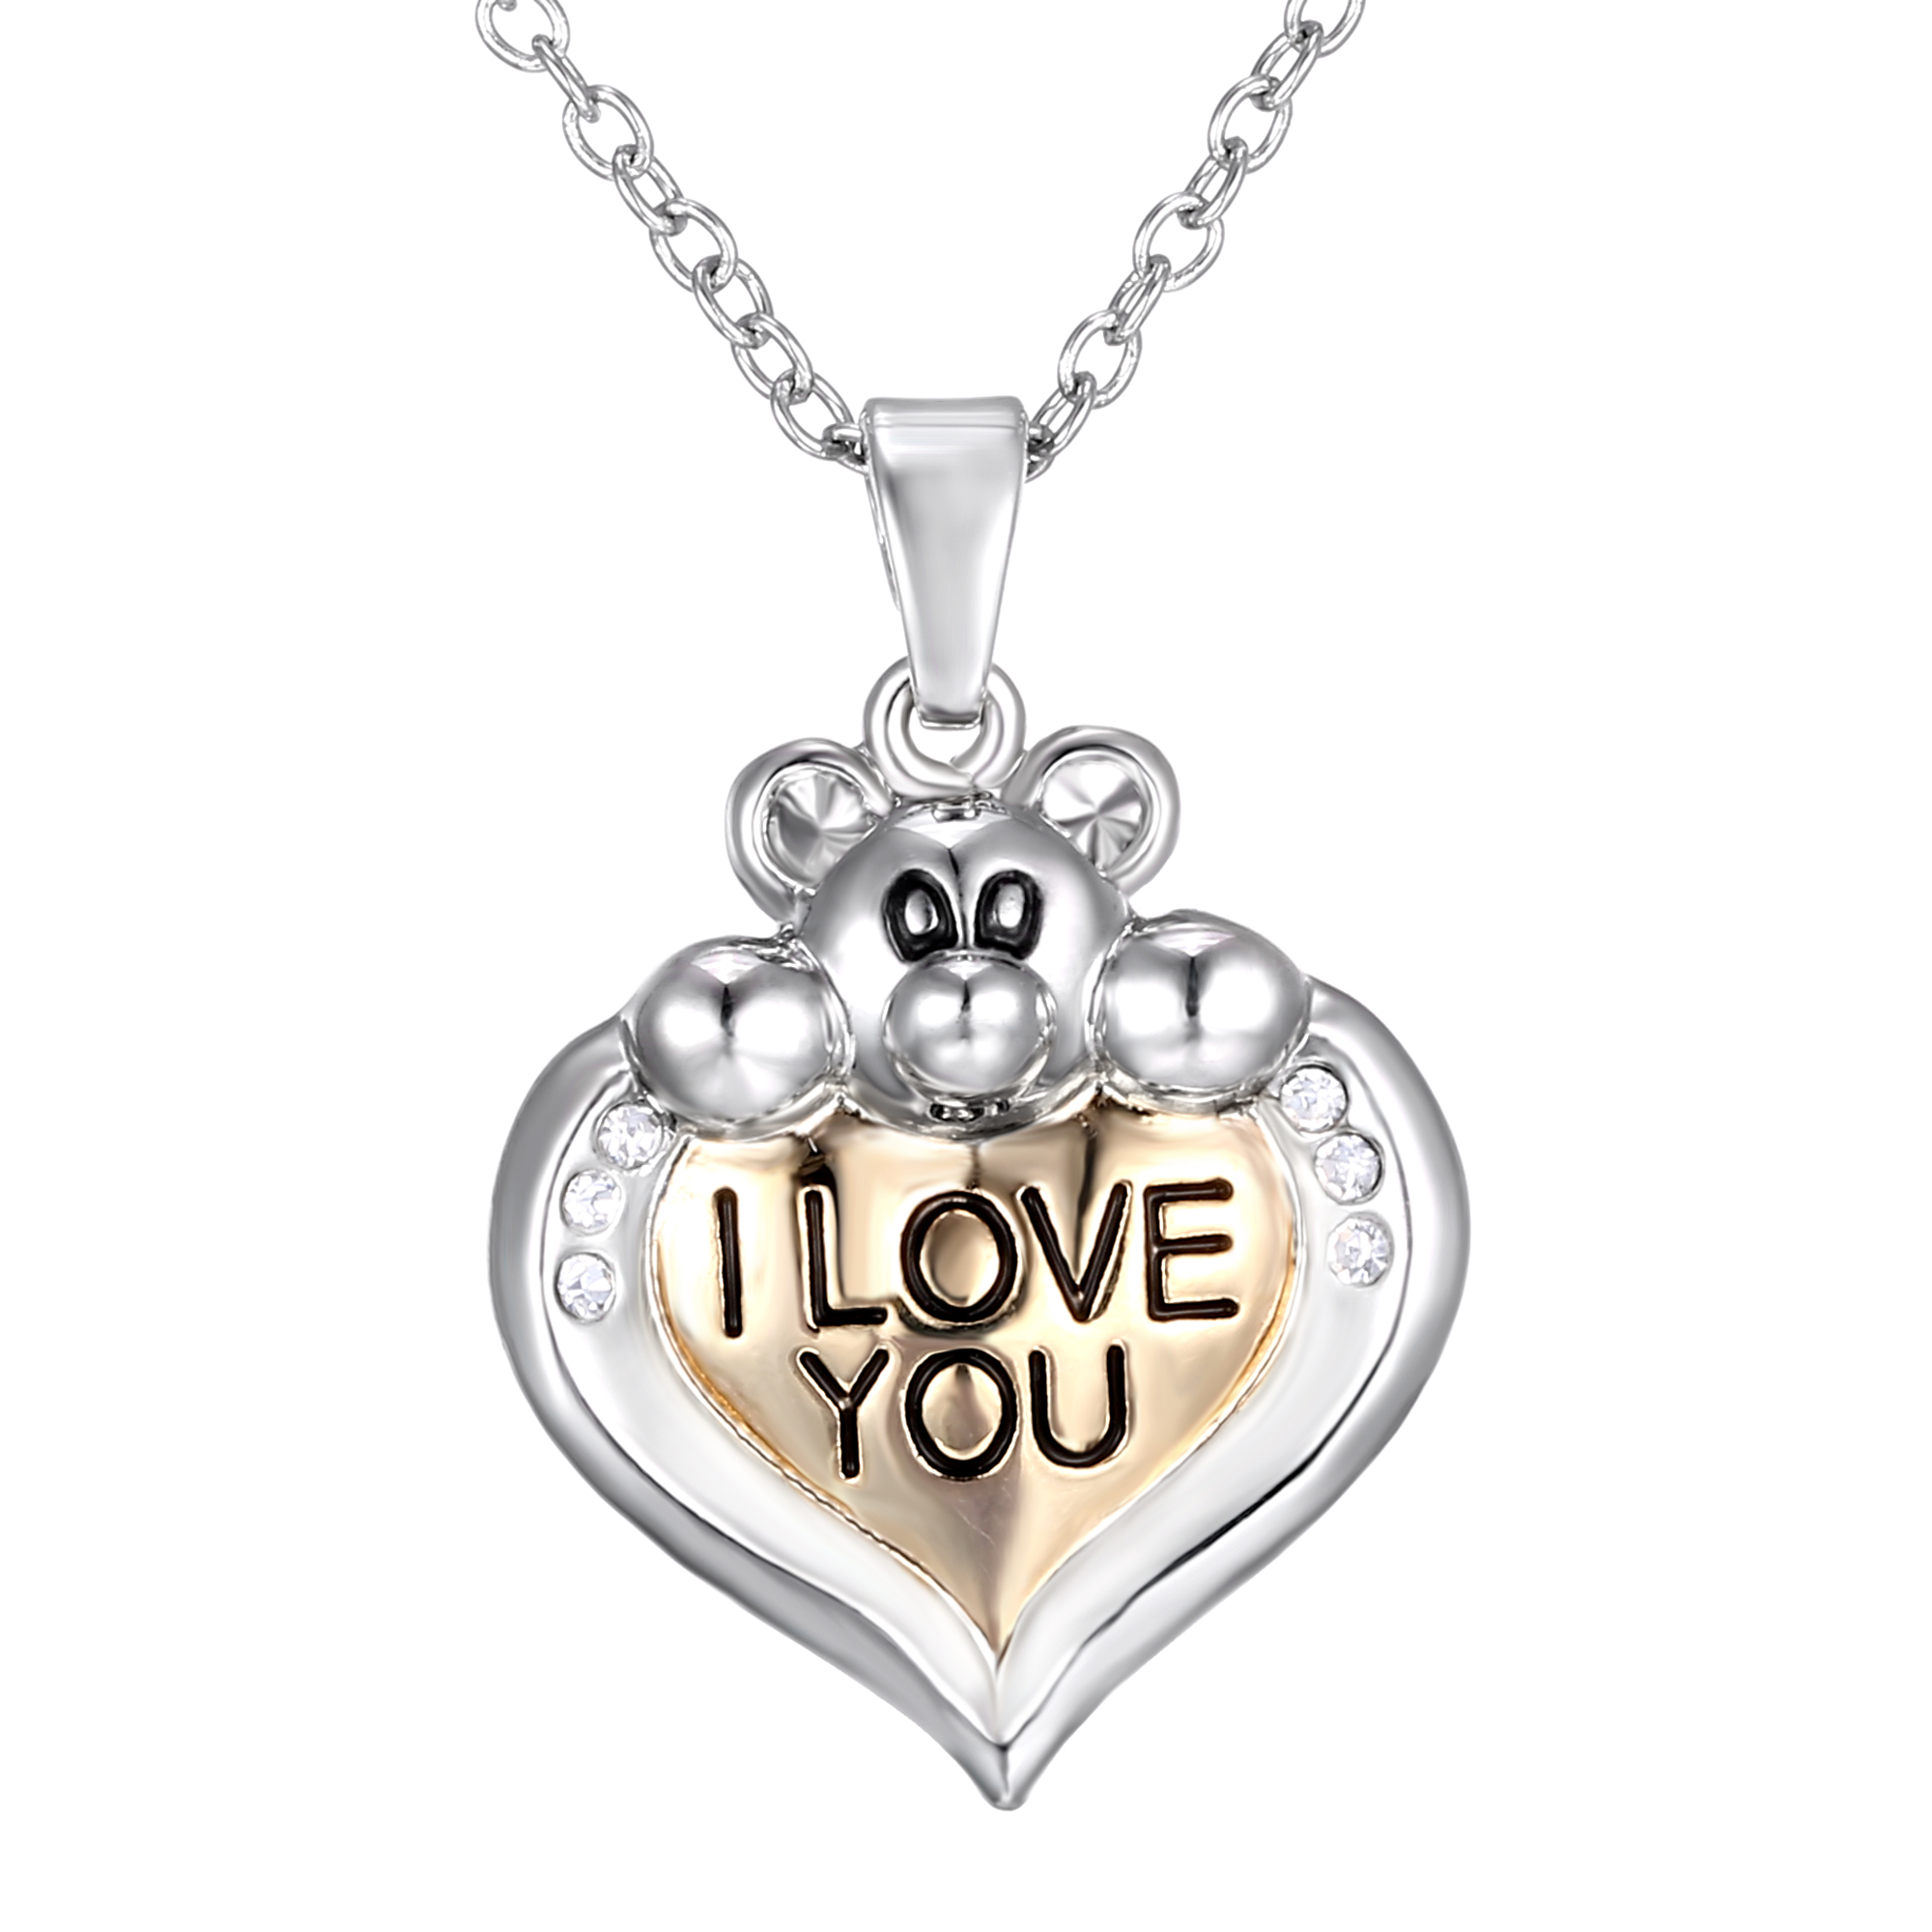 new family lover gift heart i love you mom silver chain